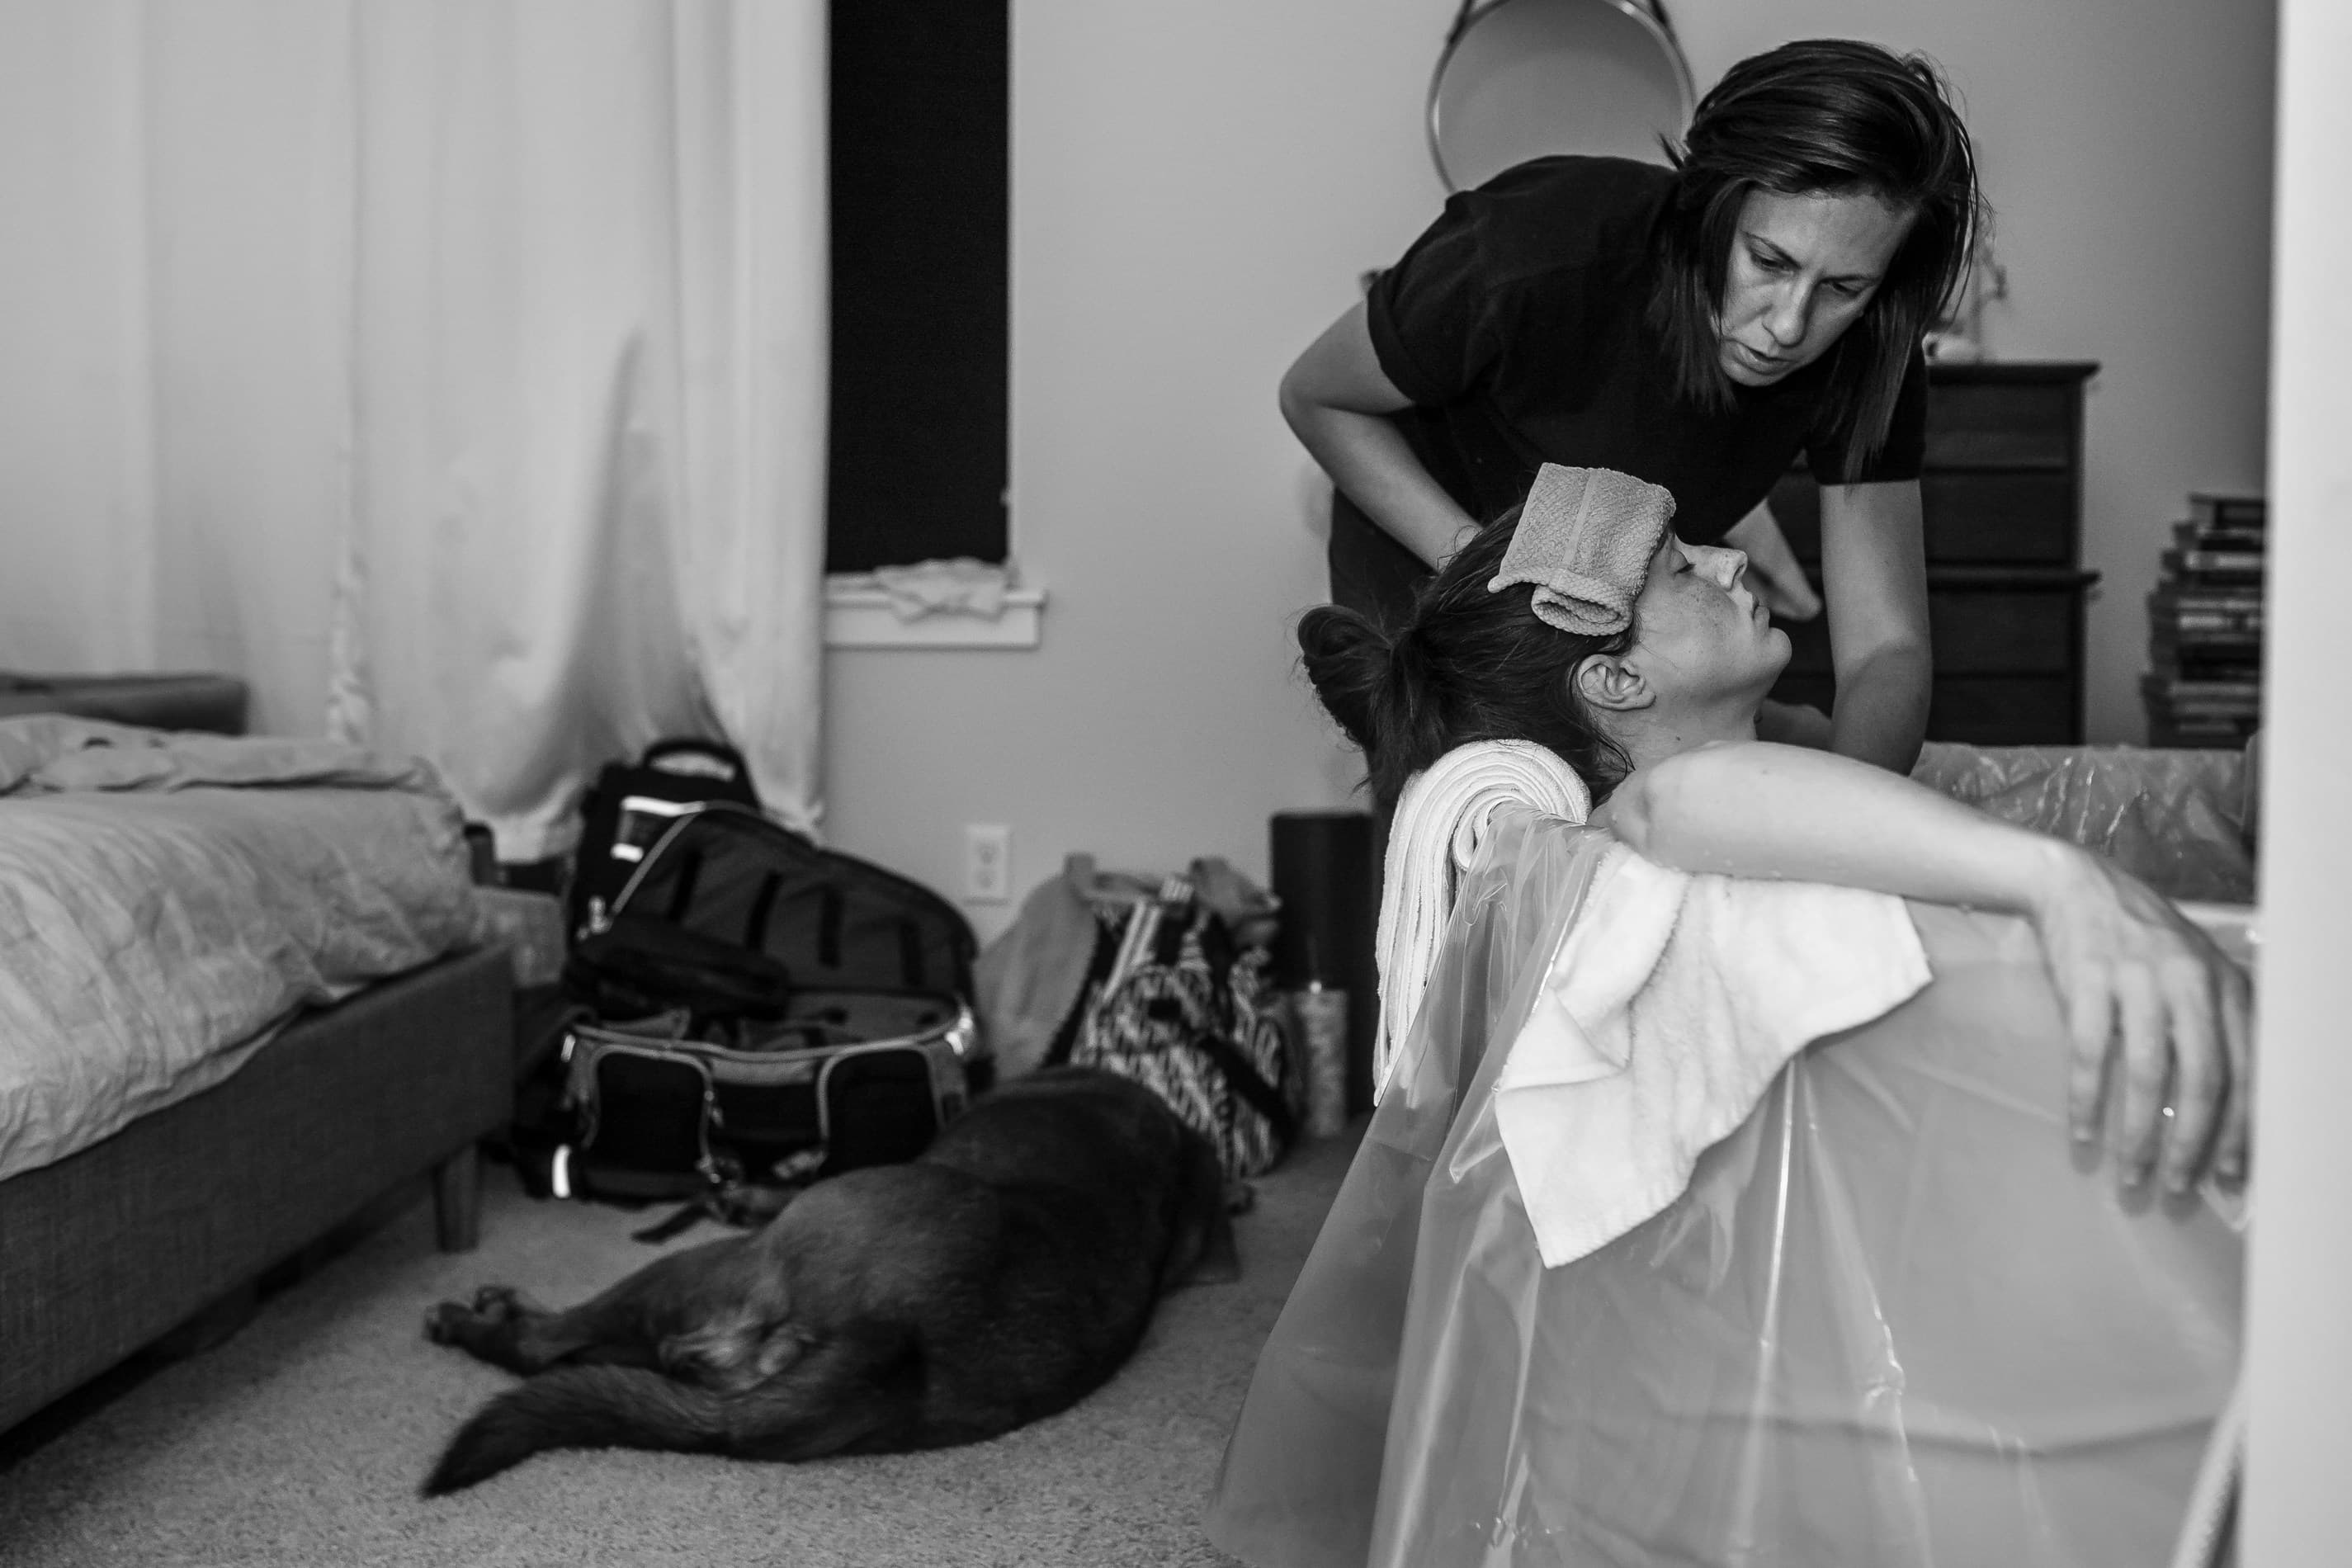 Wife attentively cares for her wife while laboring at home, the family dog laying on the floor behind them